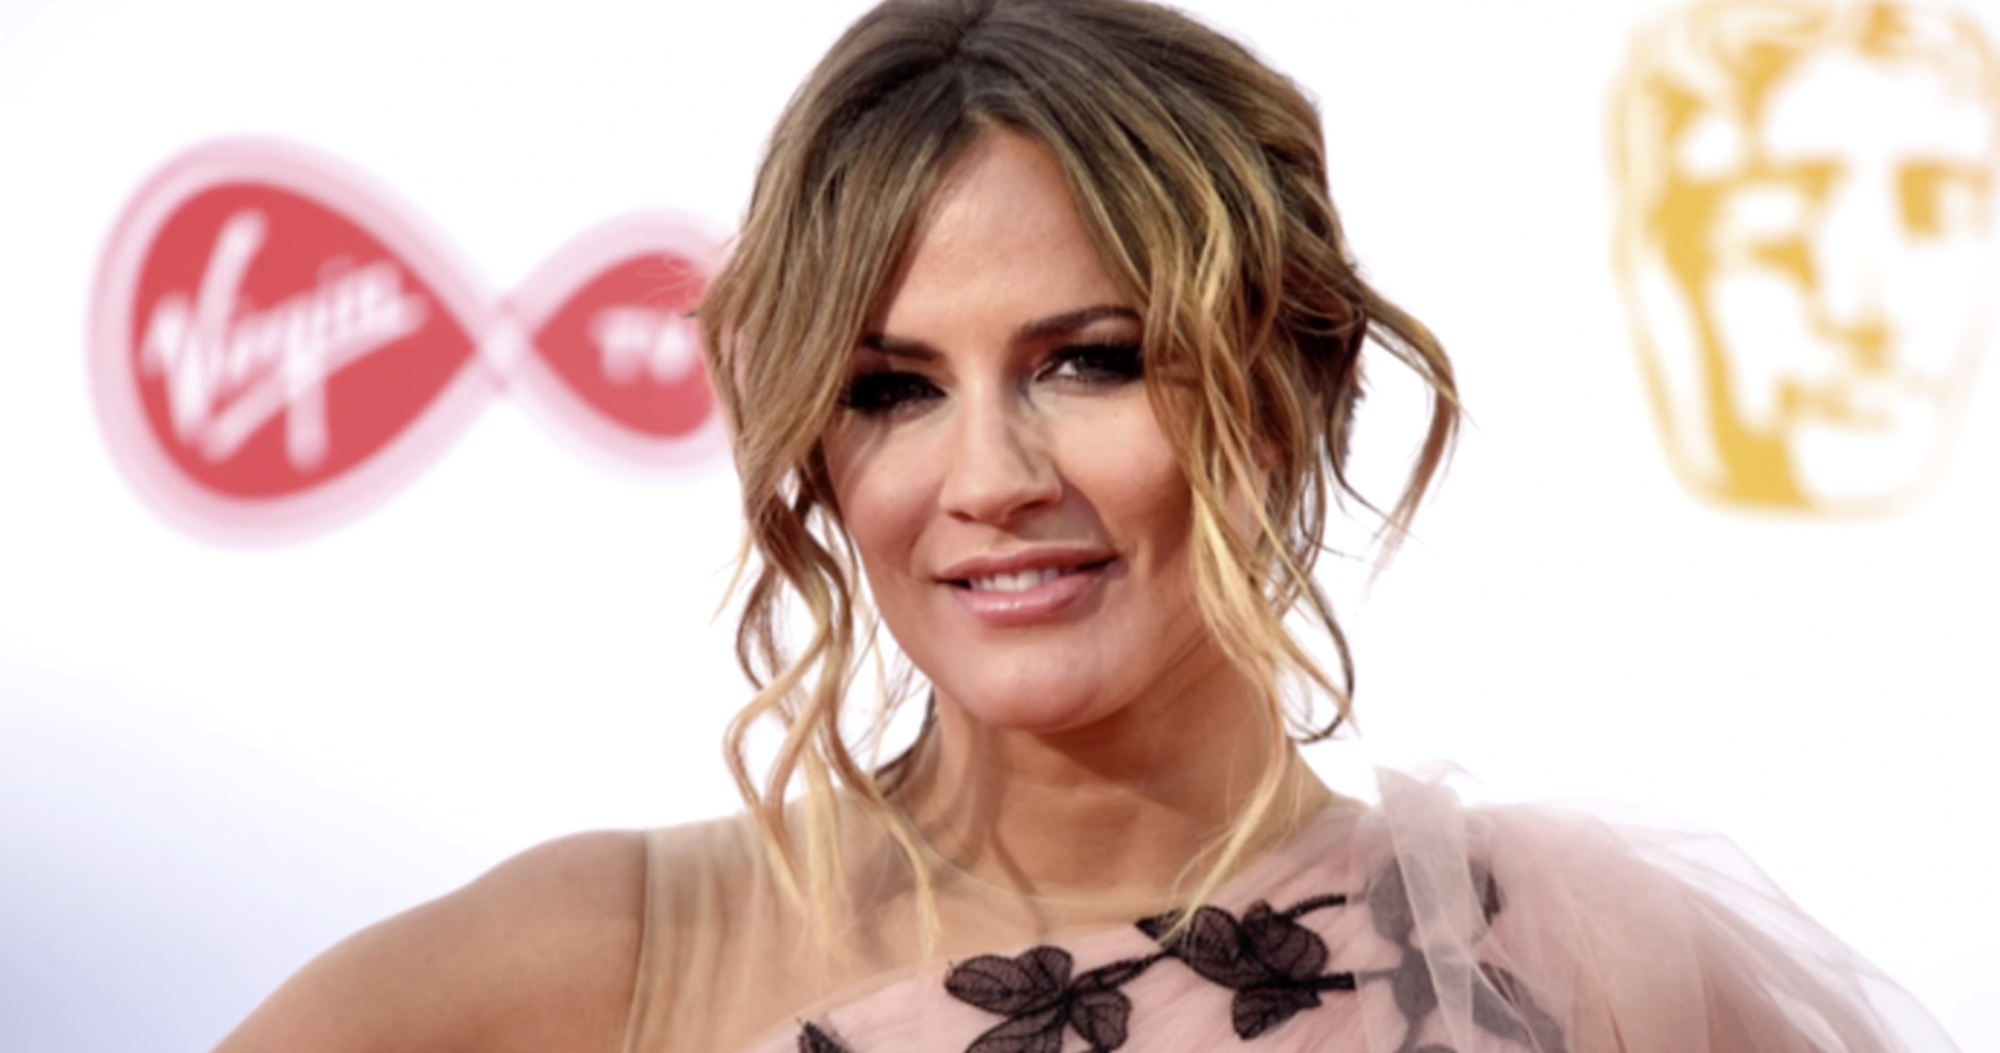 Coroner finds Caroline Flack took her own life after learning of prosecution - channel 4